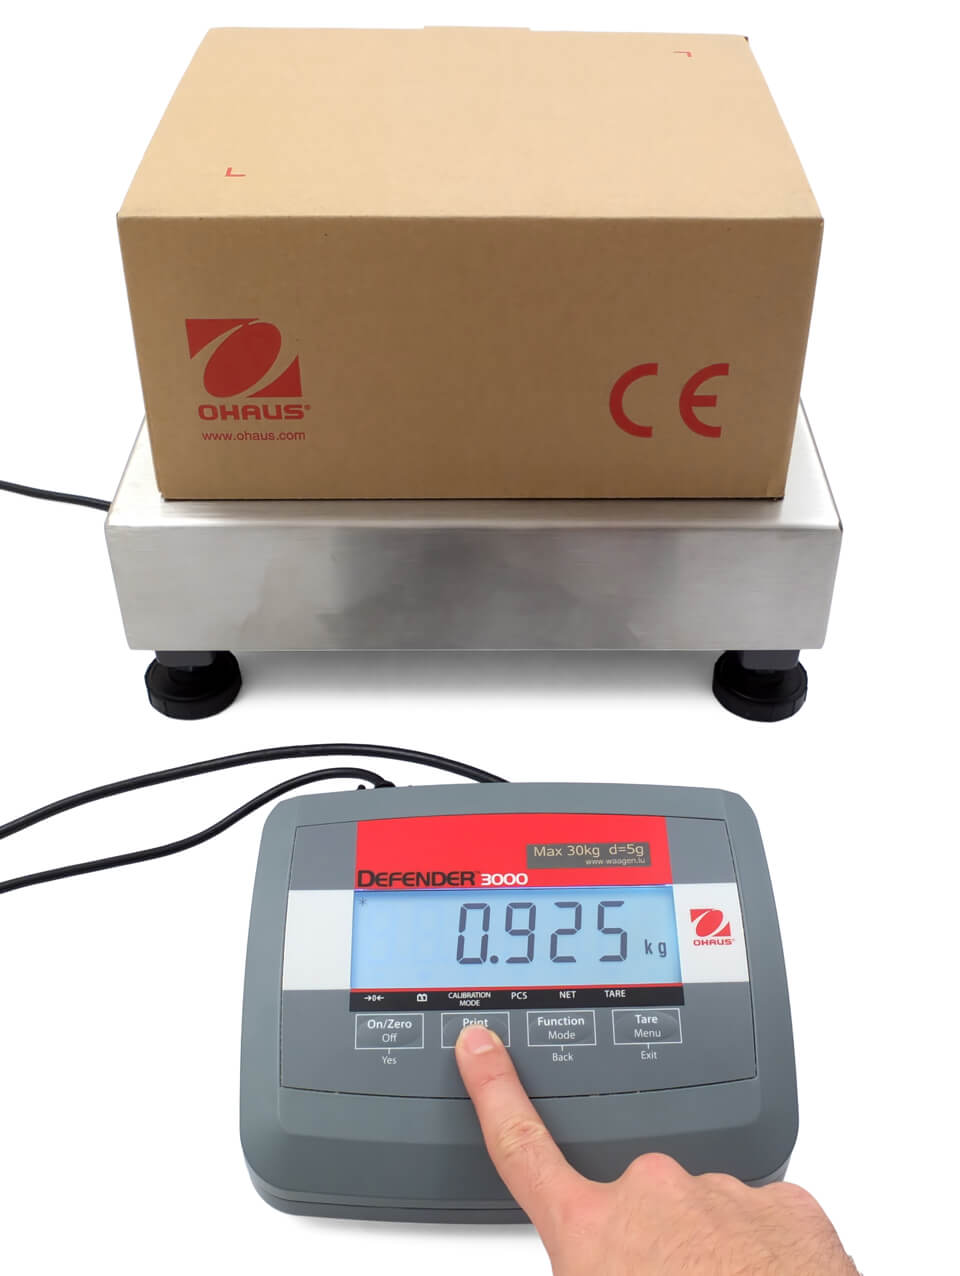 Print key Ohaus Defender 3000 parcel scale